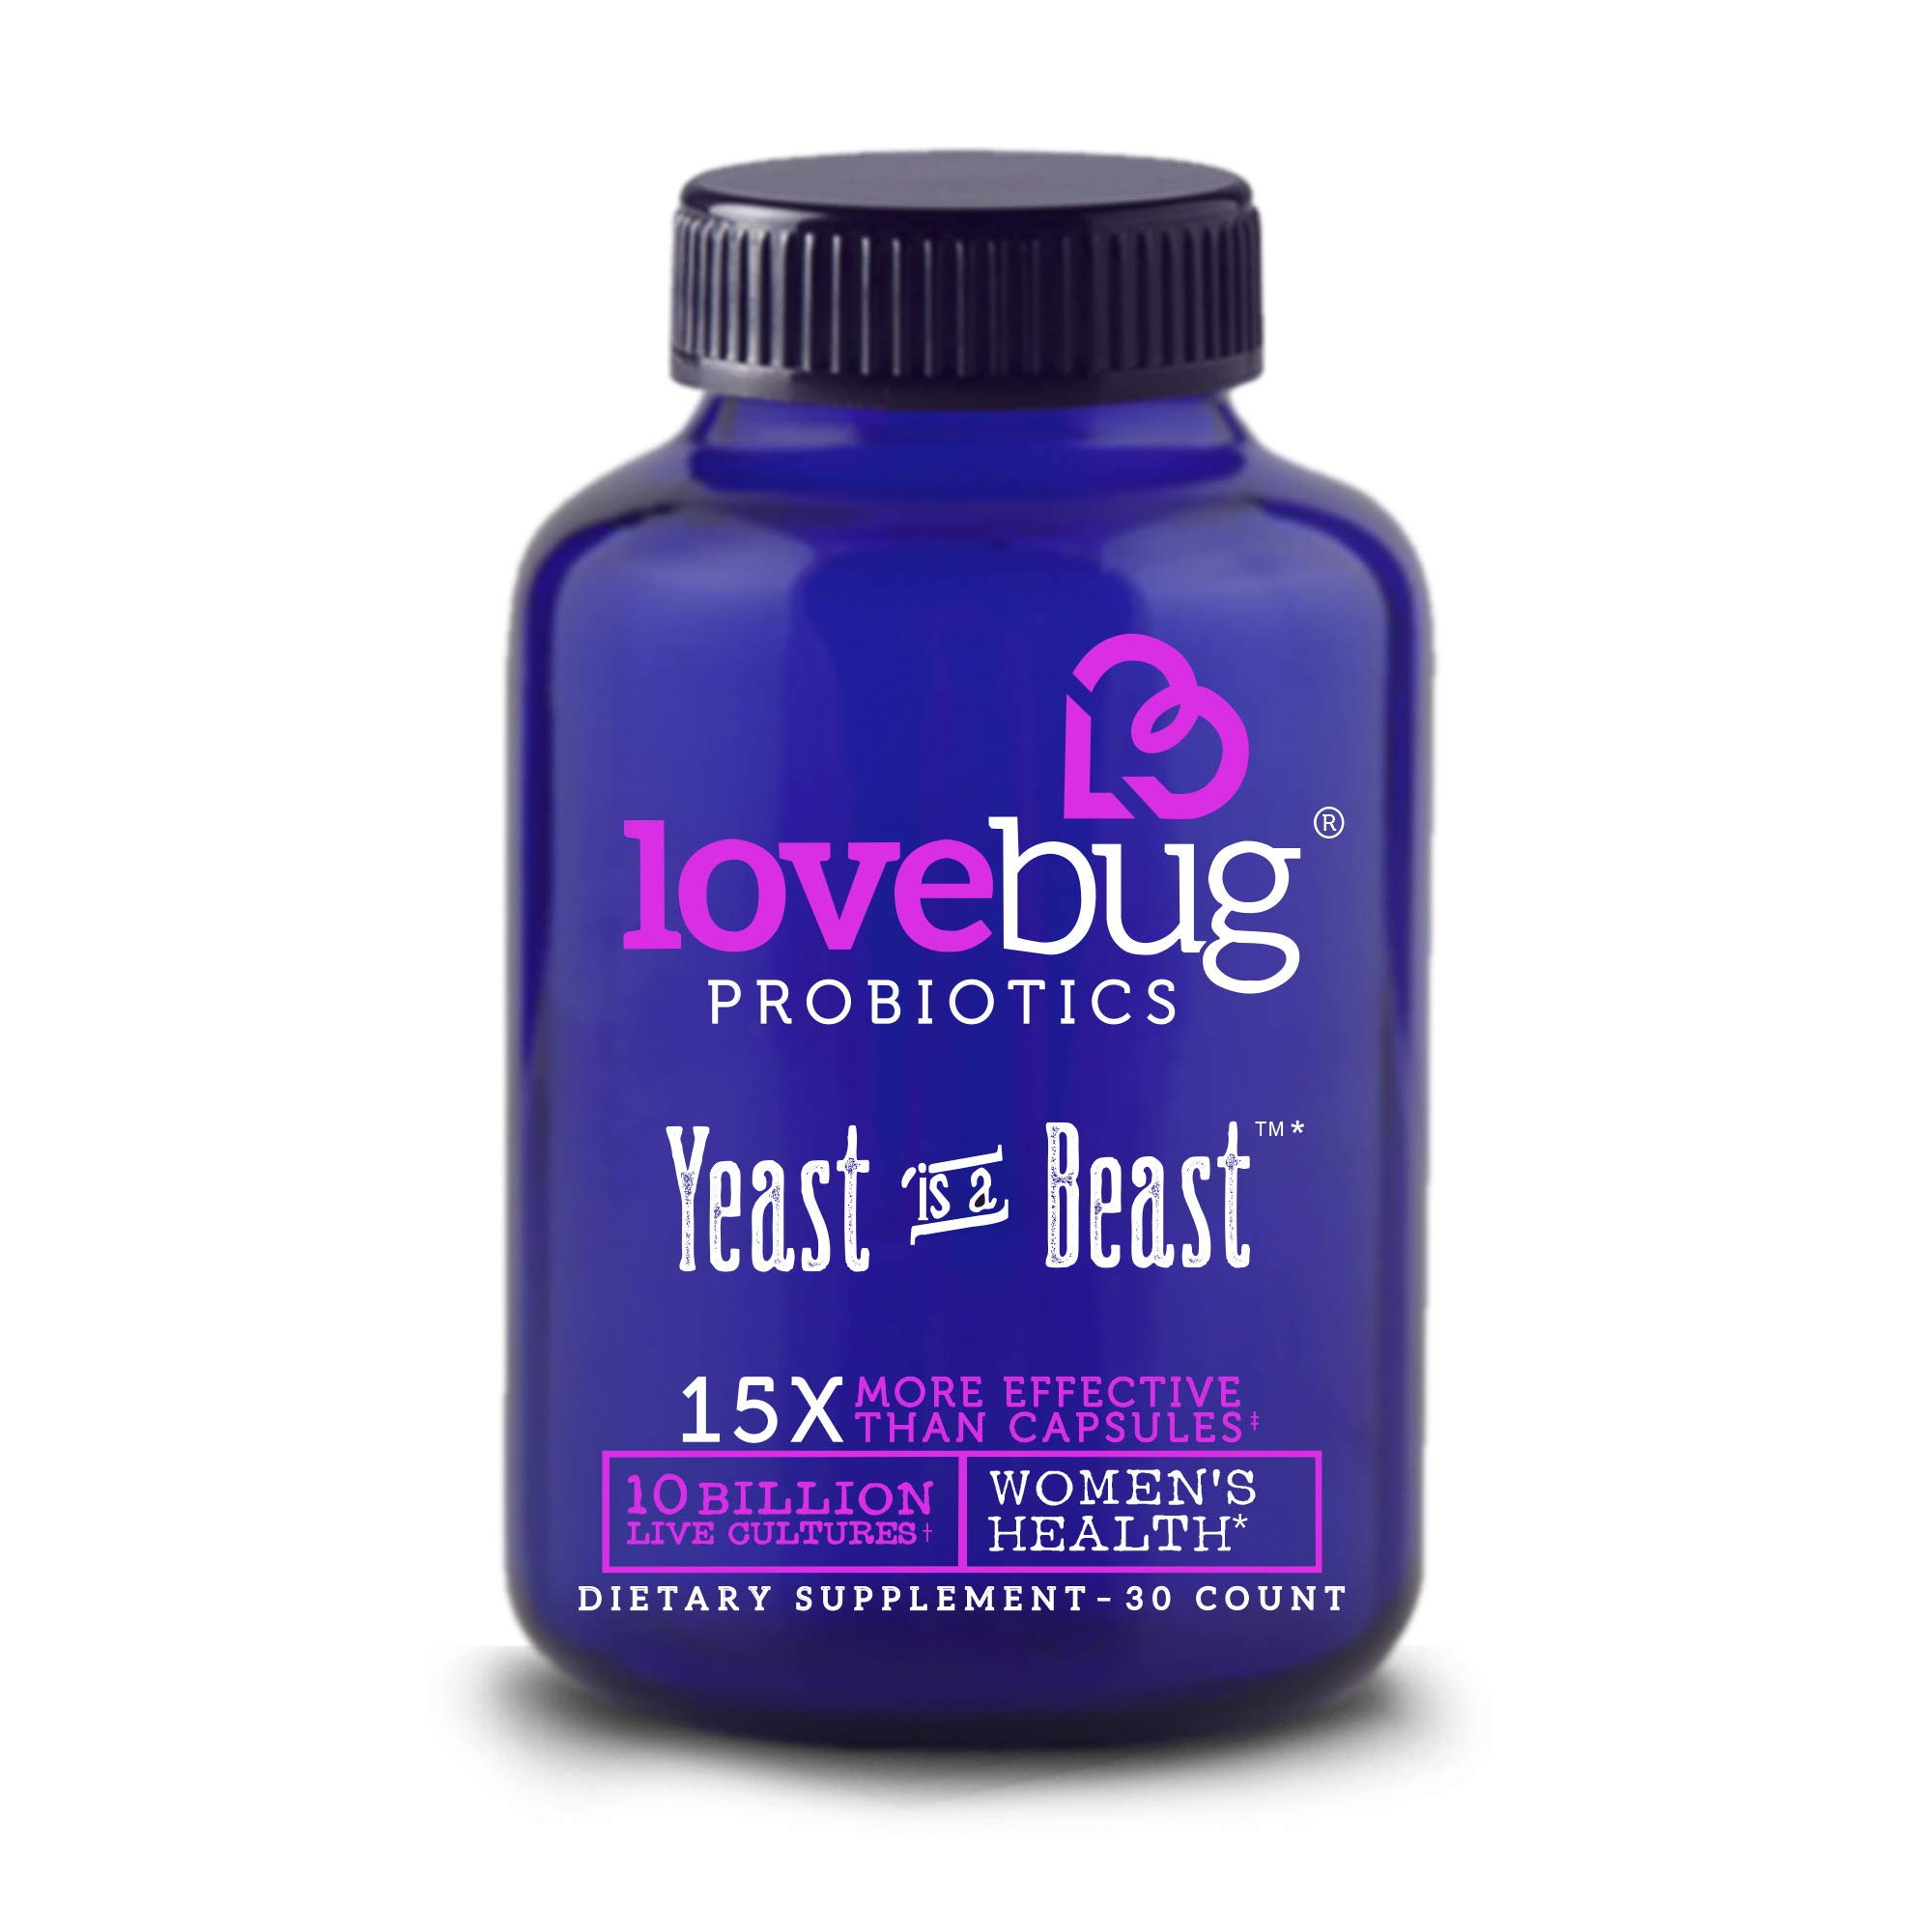 Yeast is a Beast 30 Tablets - Pack of 2